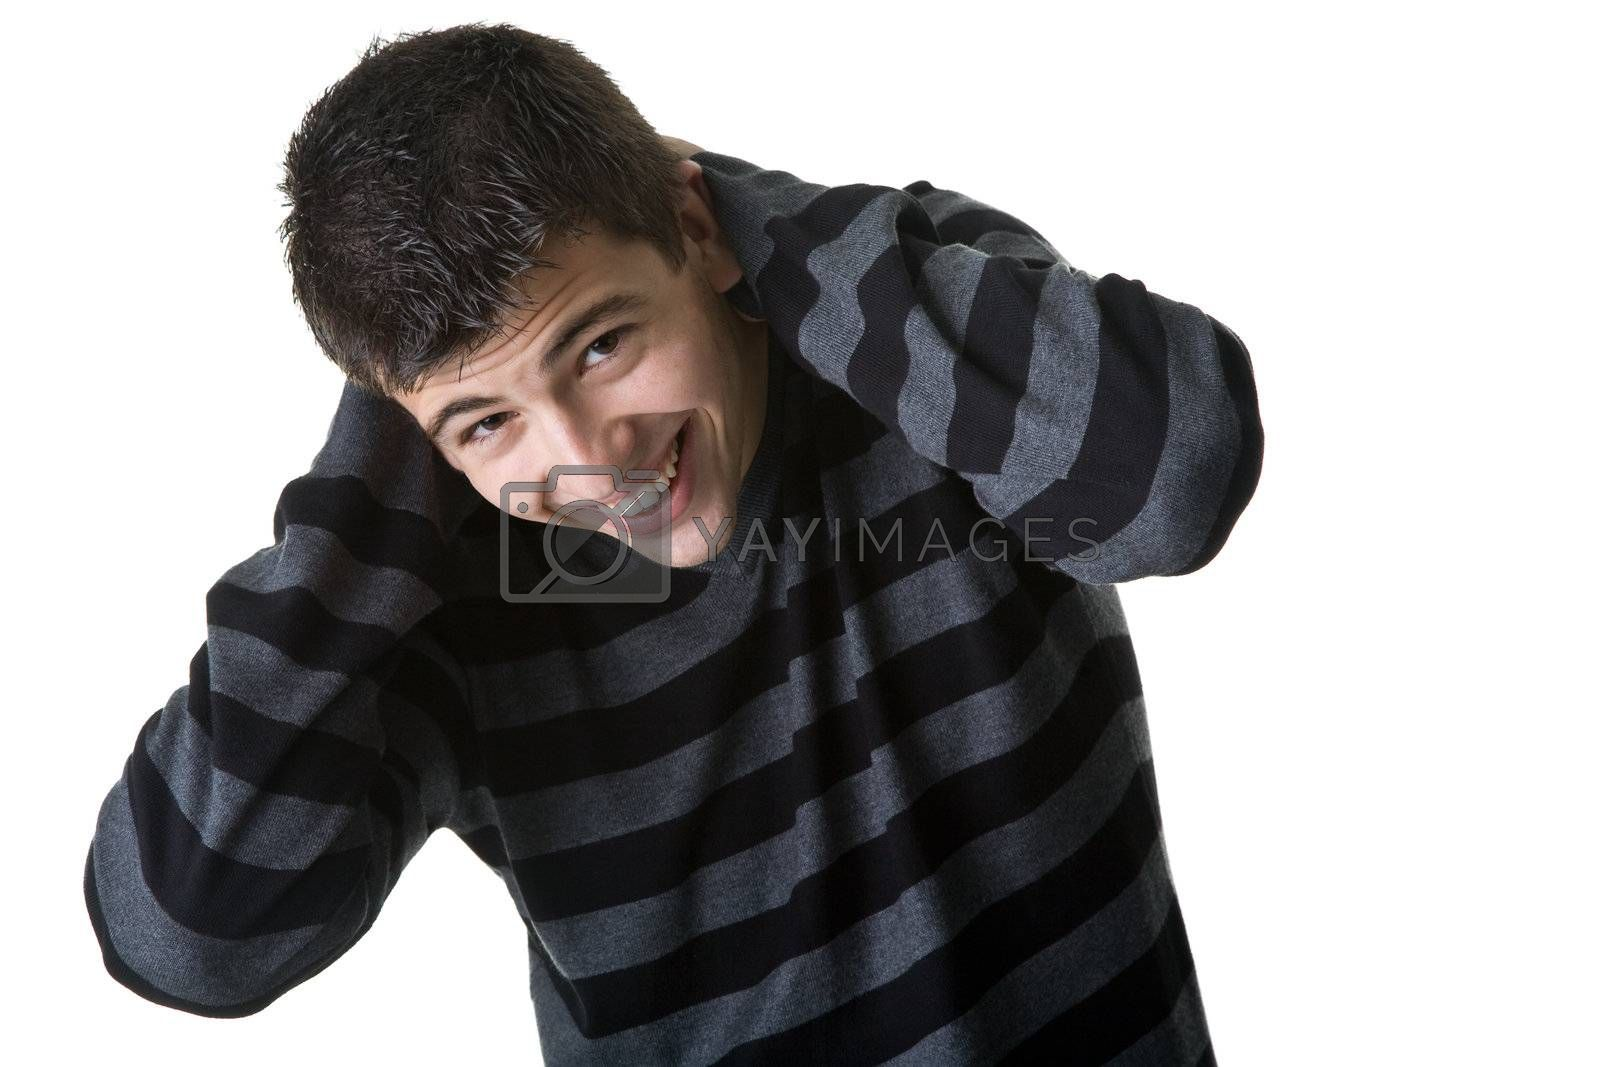 Portrait of a handsome young man laughing. Isolated on white background.